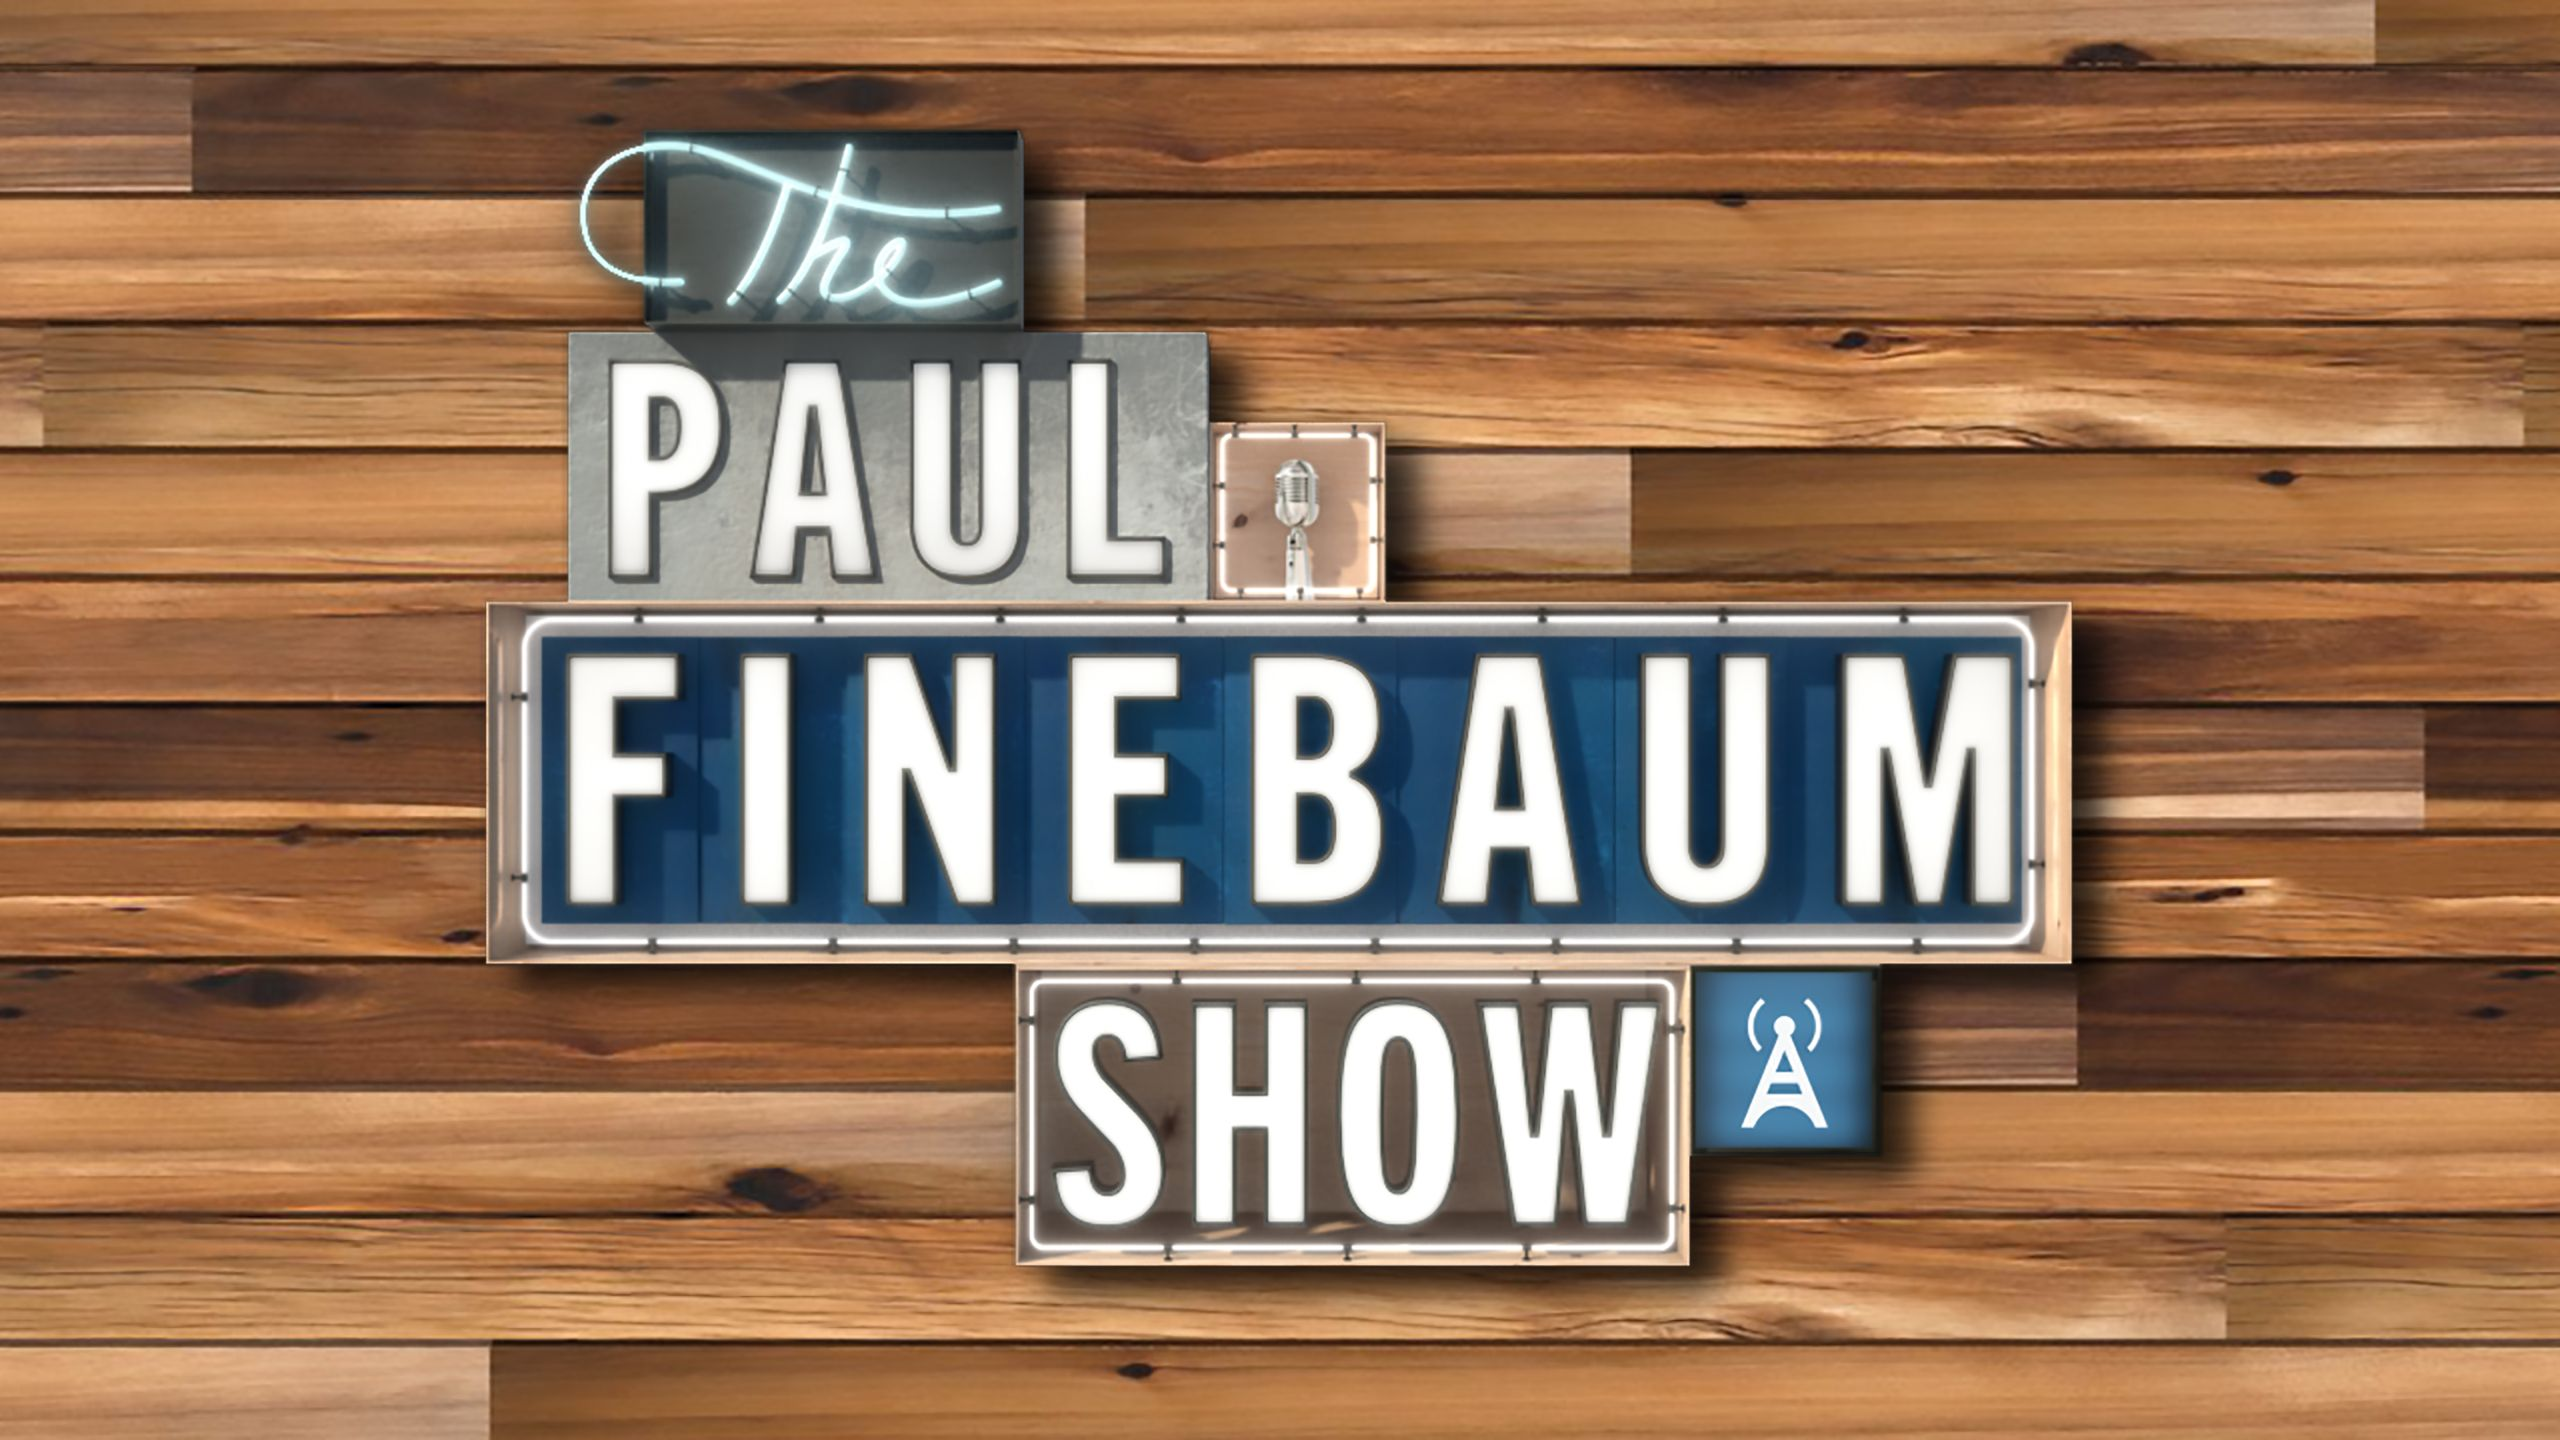 Fri, 7/20 - The Paul Finebaum Show